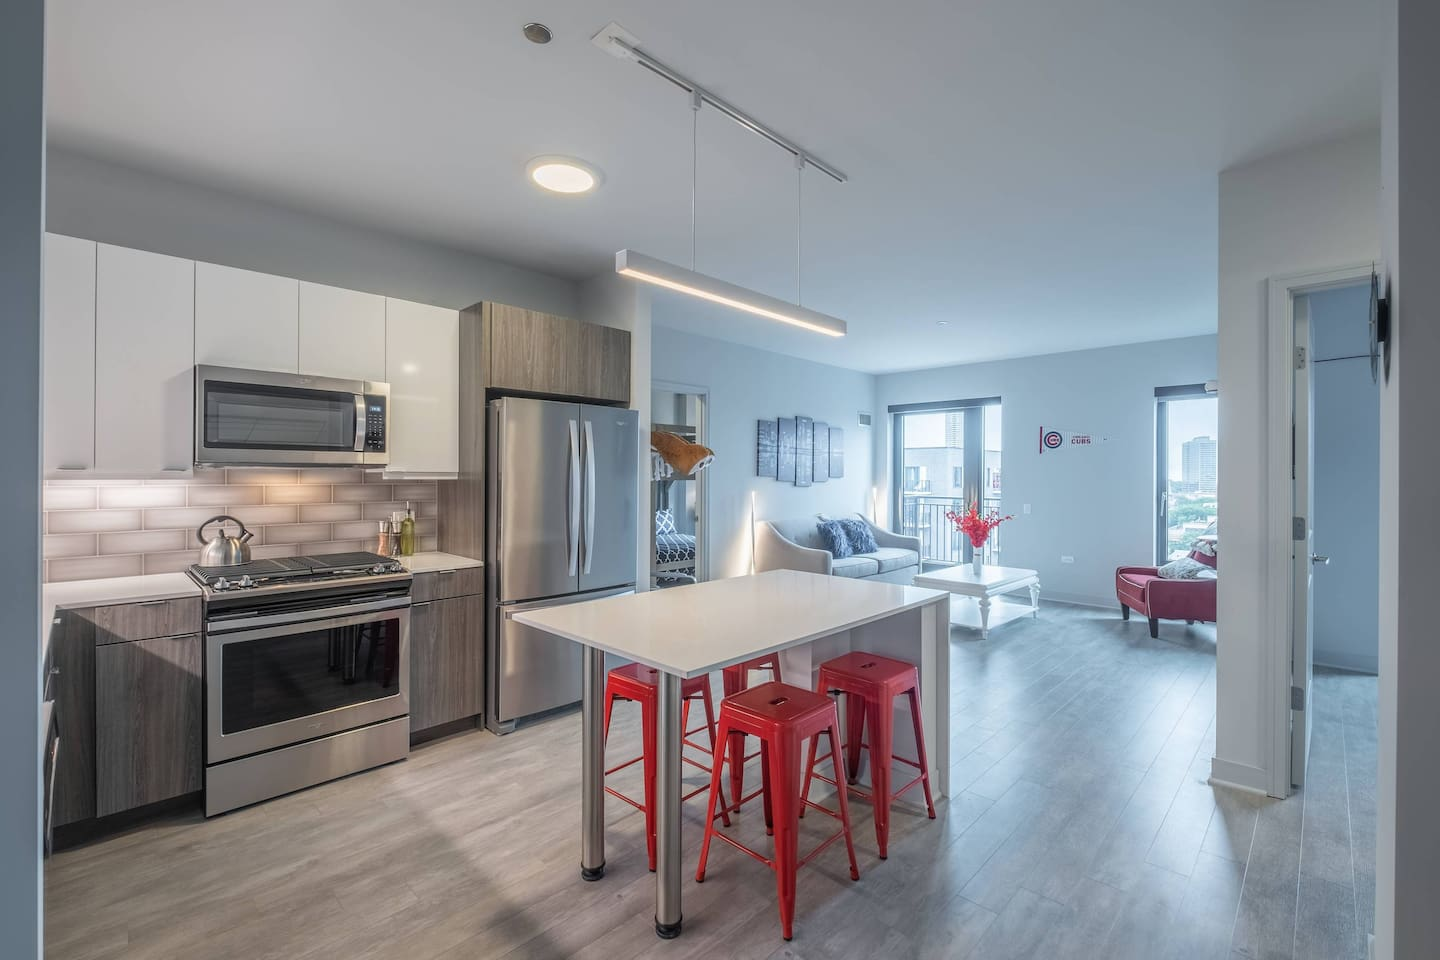 Kitchen offers stainless steel Whirlpool appliances including dishwasher and gas range, full tile back splashes, quartz countertop island barstool seating as well as table seating